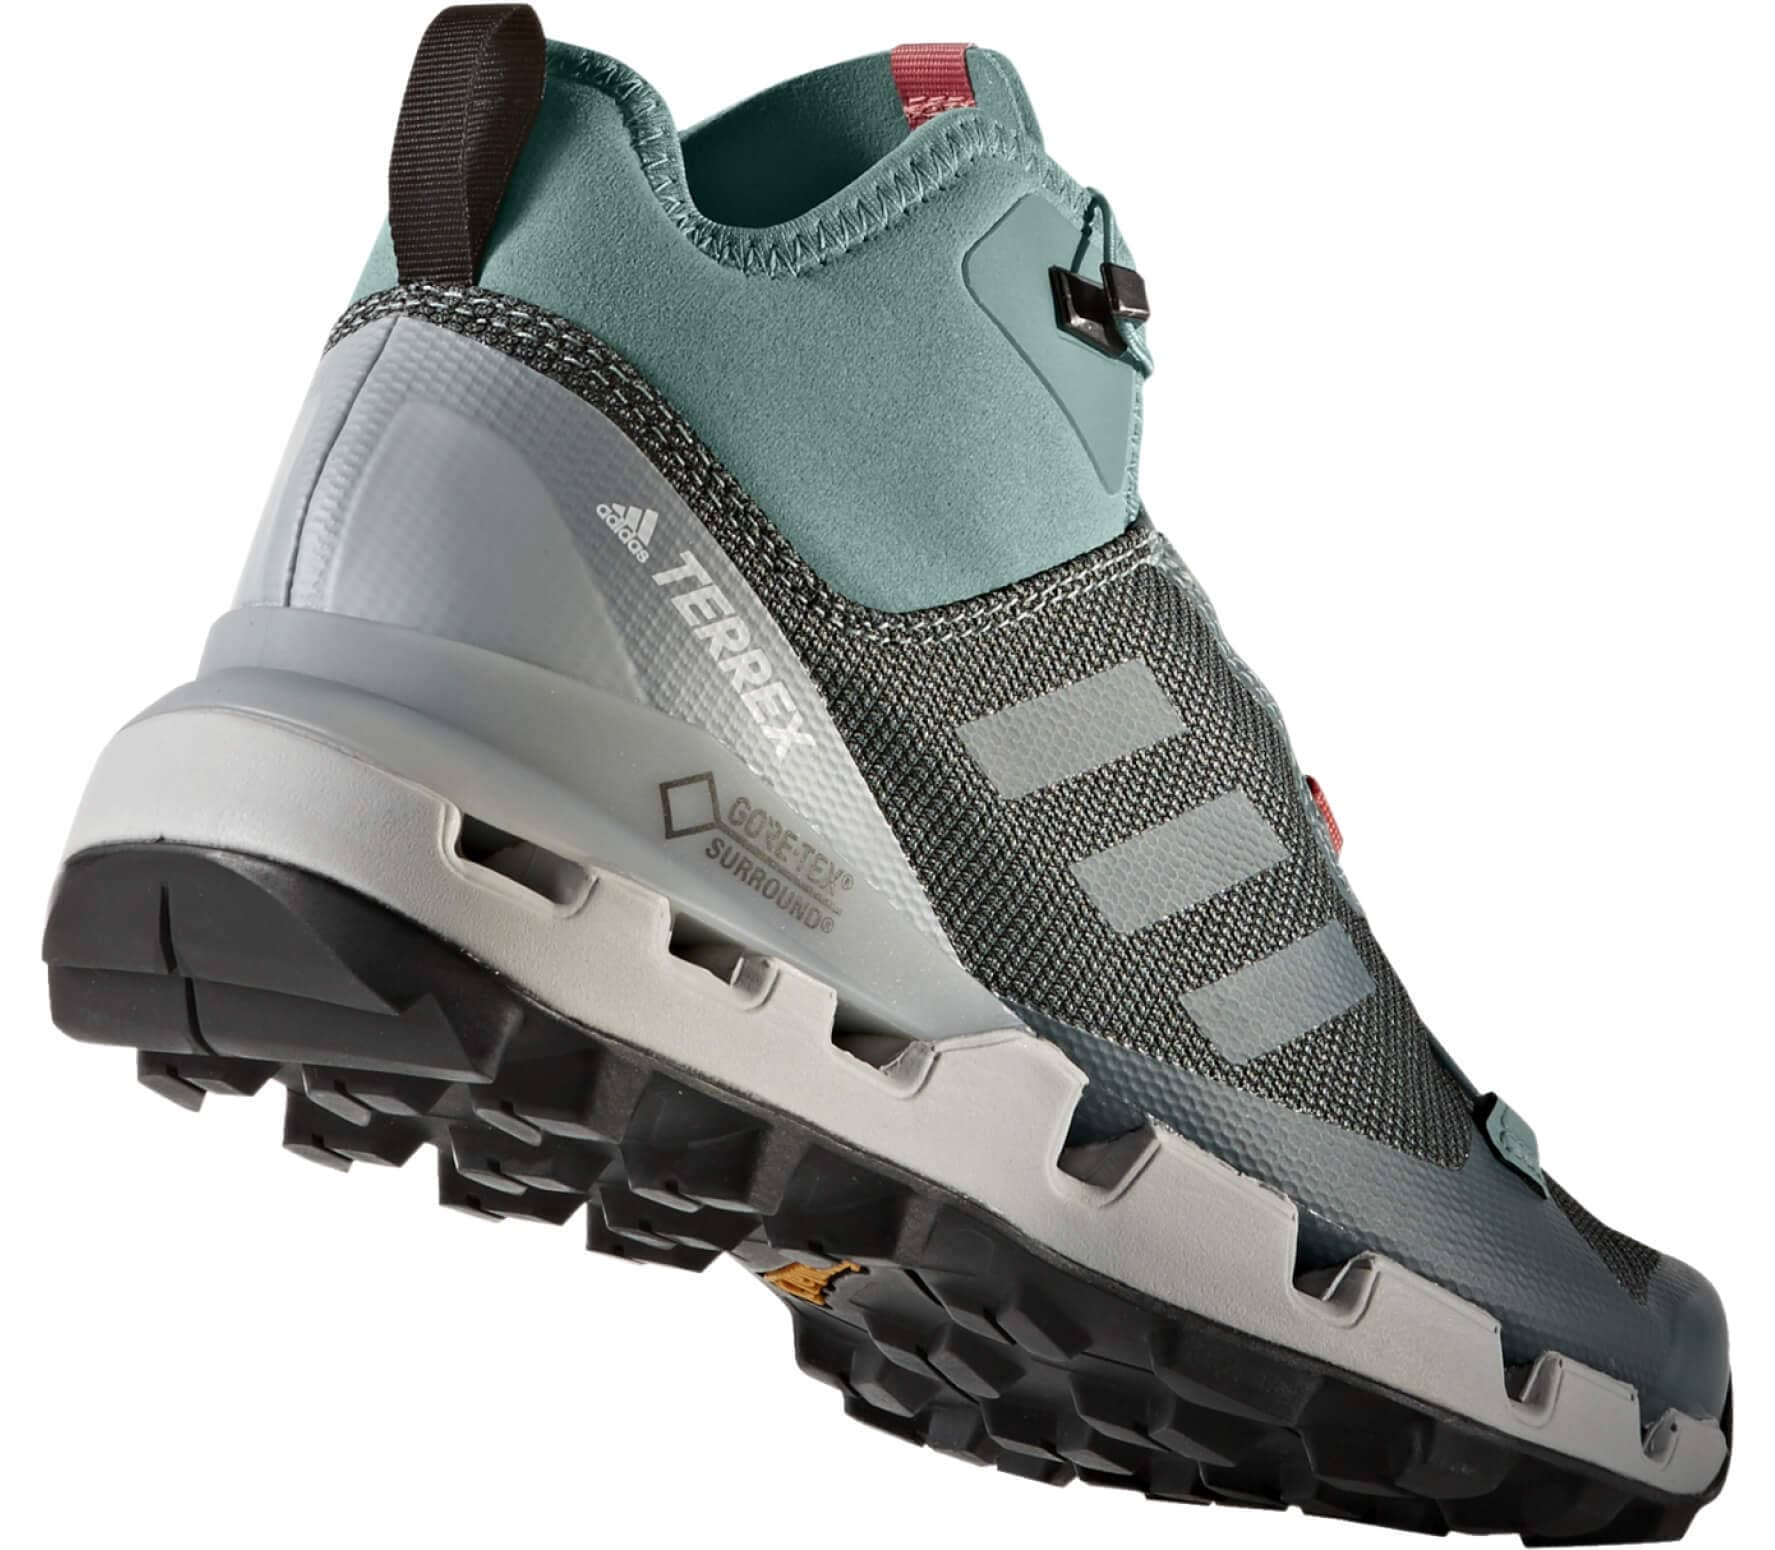 Adidas Terrex Fast Mid GTX Surround women's hiking shoes (greyblue)